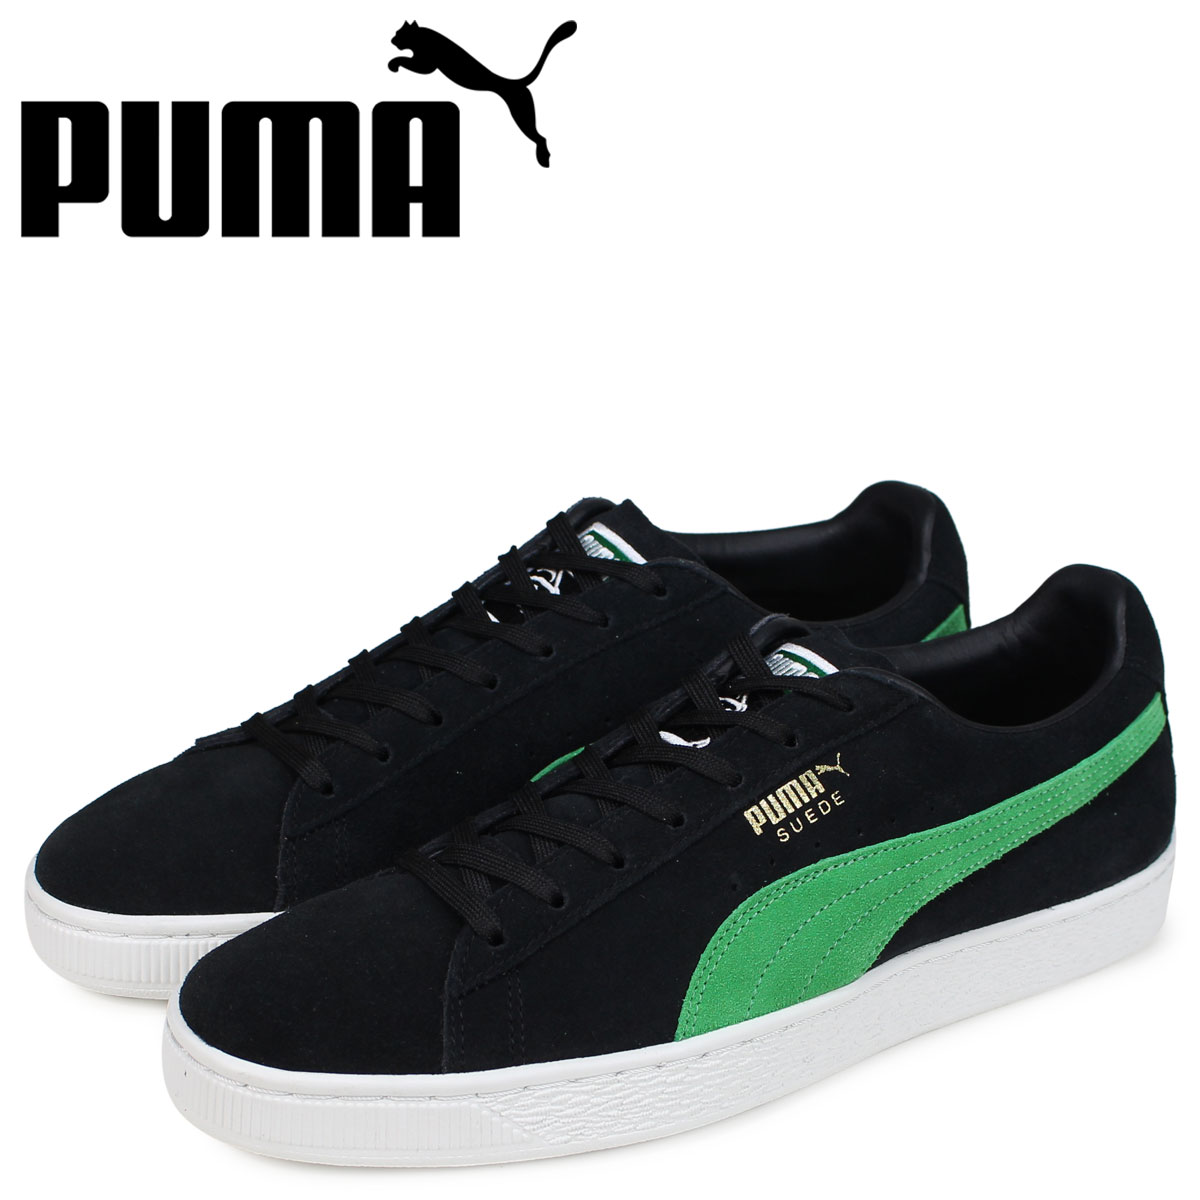 PUMA Puma suede cloth classical music sneakers men extra large  collaboration X-LARGE SUEDE CLASSIC black 366 dcba7cc56